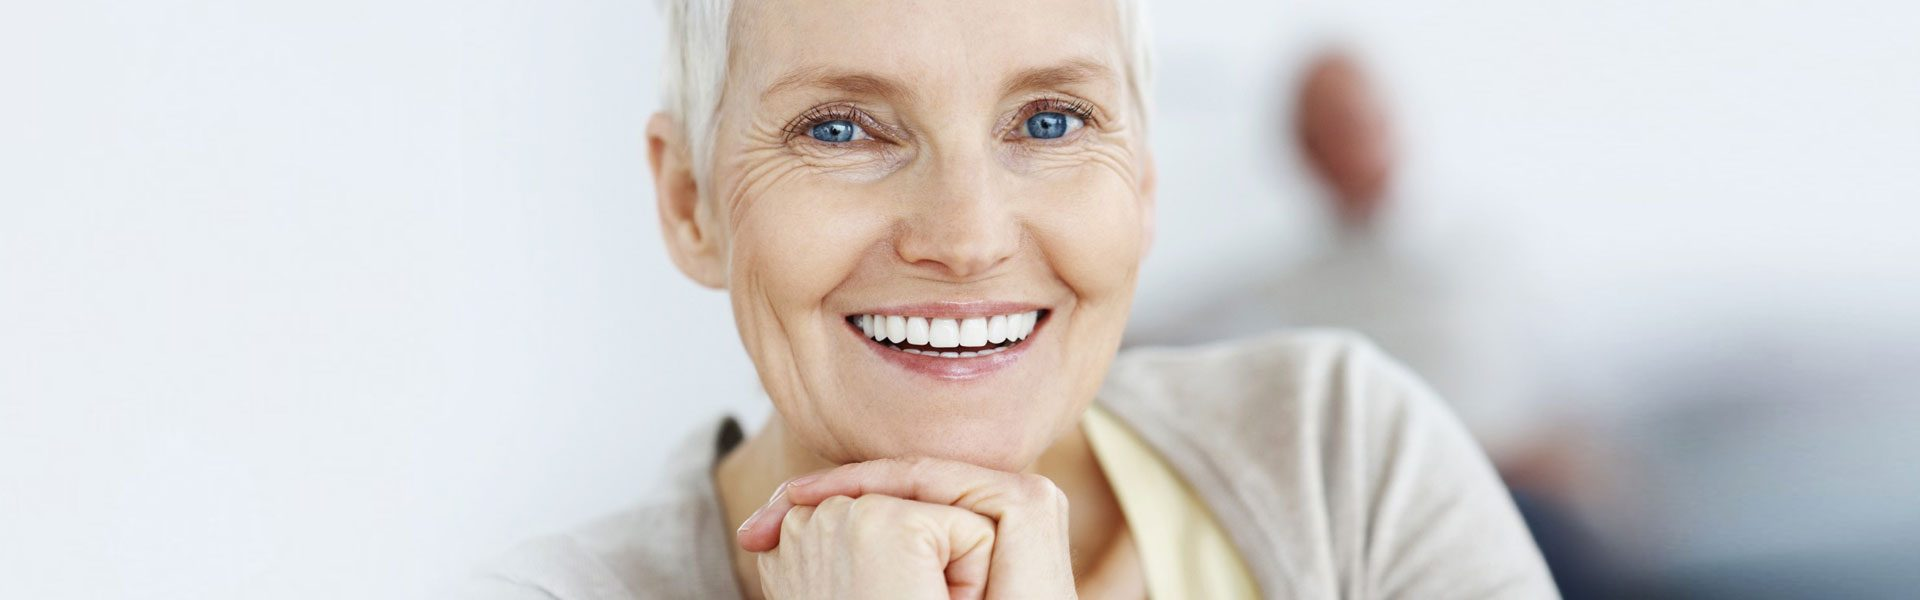 3 Types of Dental Implants